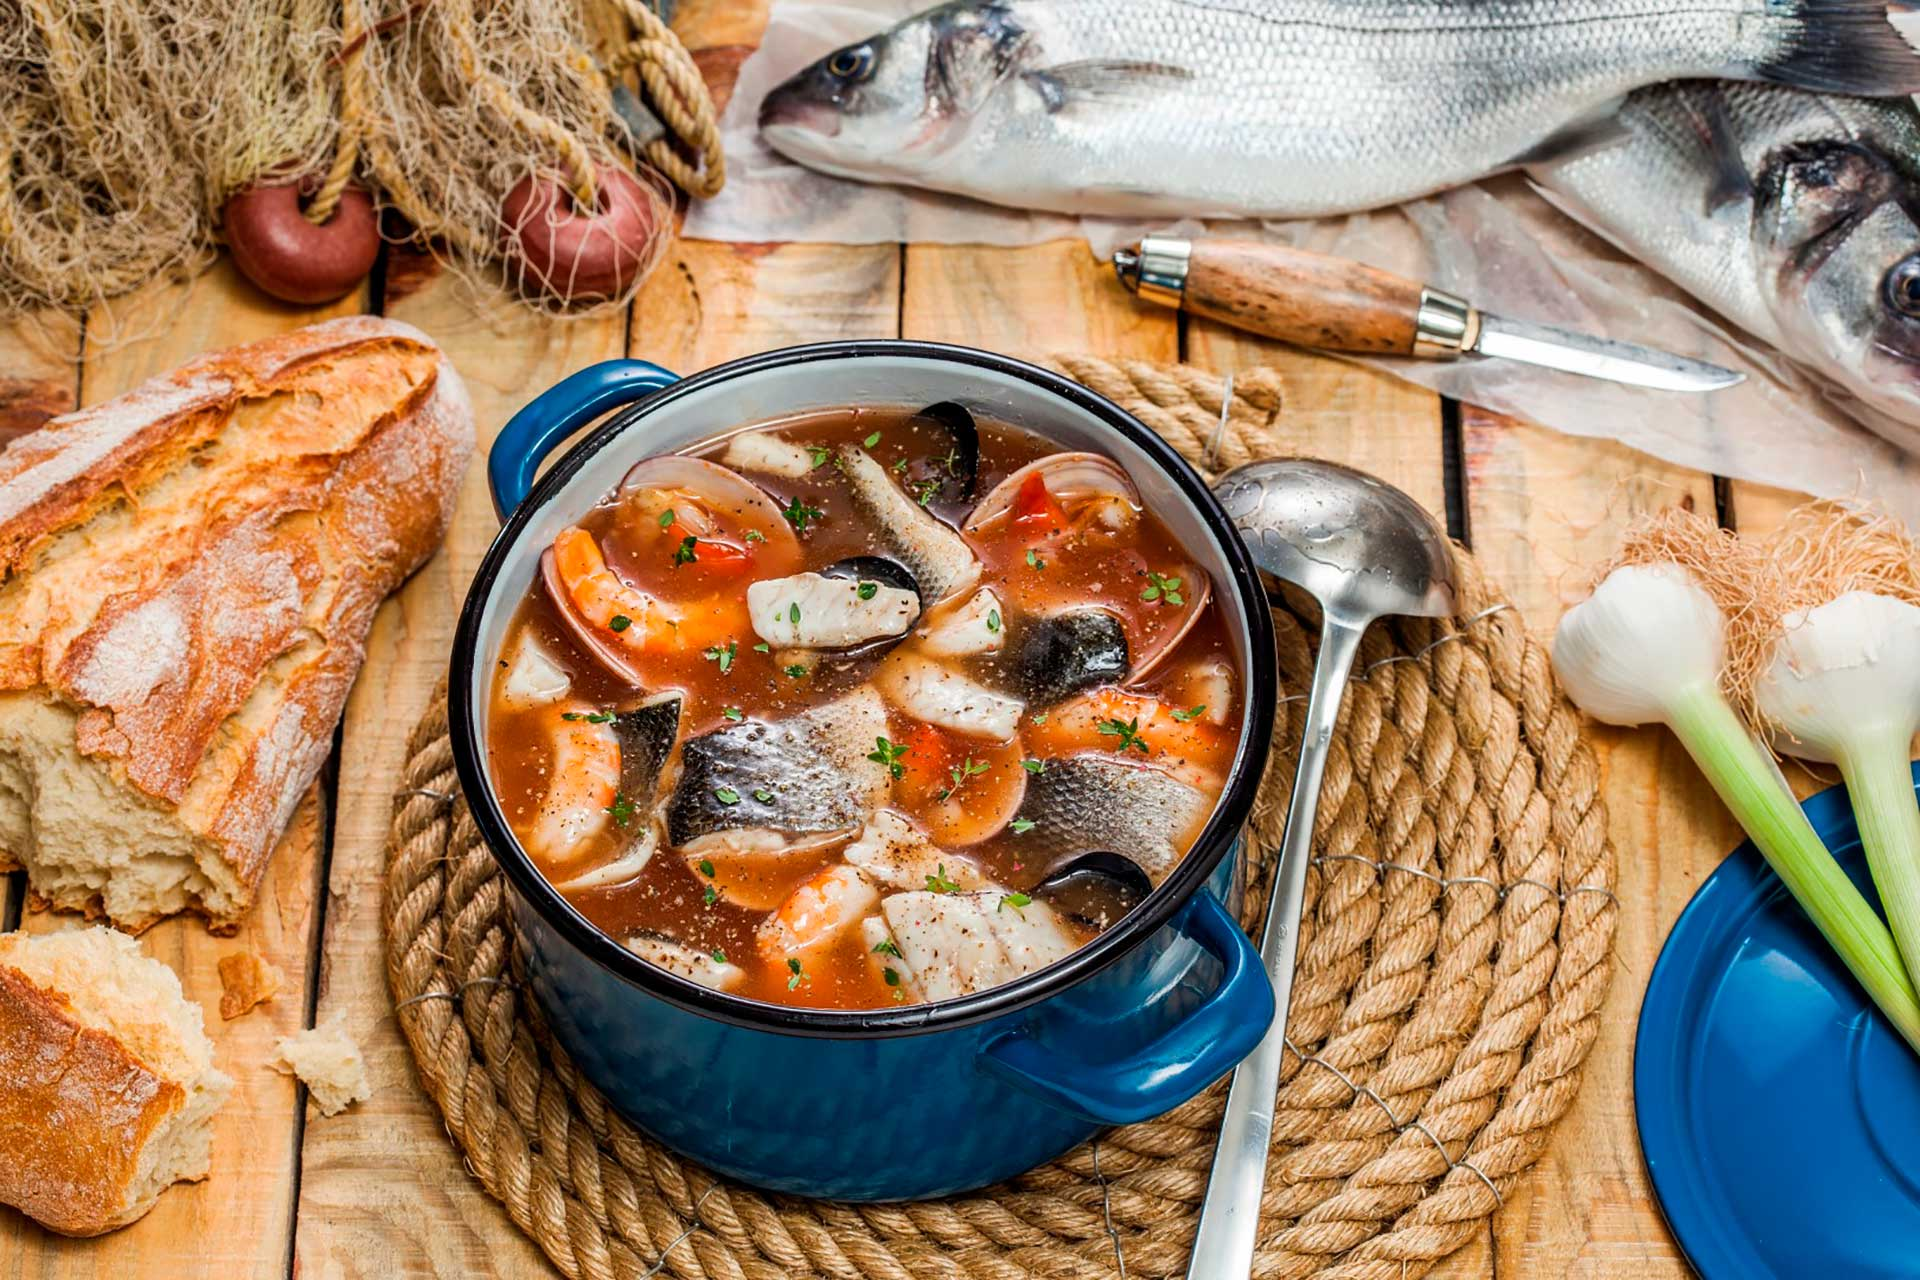 Kefalonia Fisheries / Mediterranean Diet and Healthy Seafood Fats